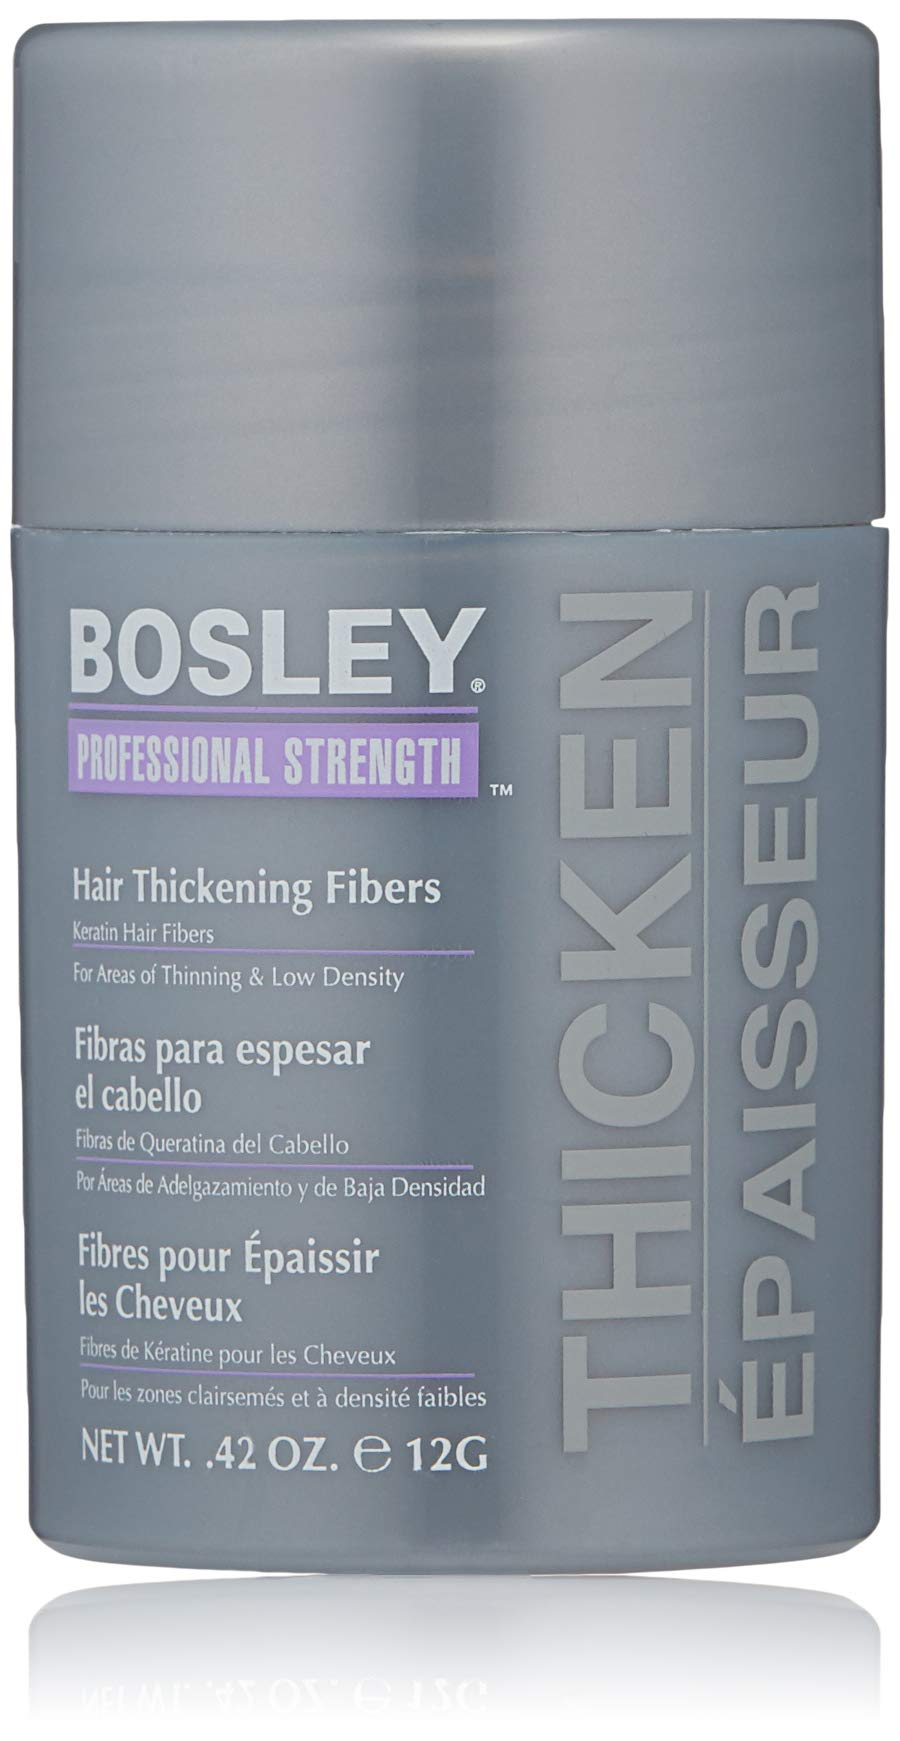 Bosley Professional Strength Hair Thickening Fibers, Black, 0.42 Ounce by Bosley Professional Strength